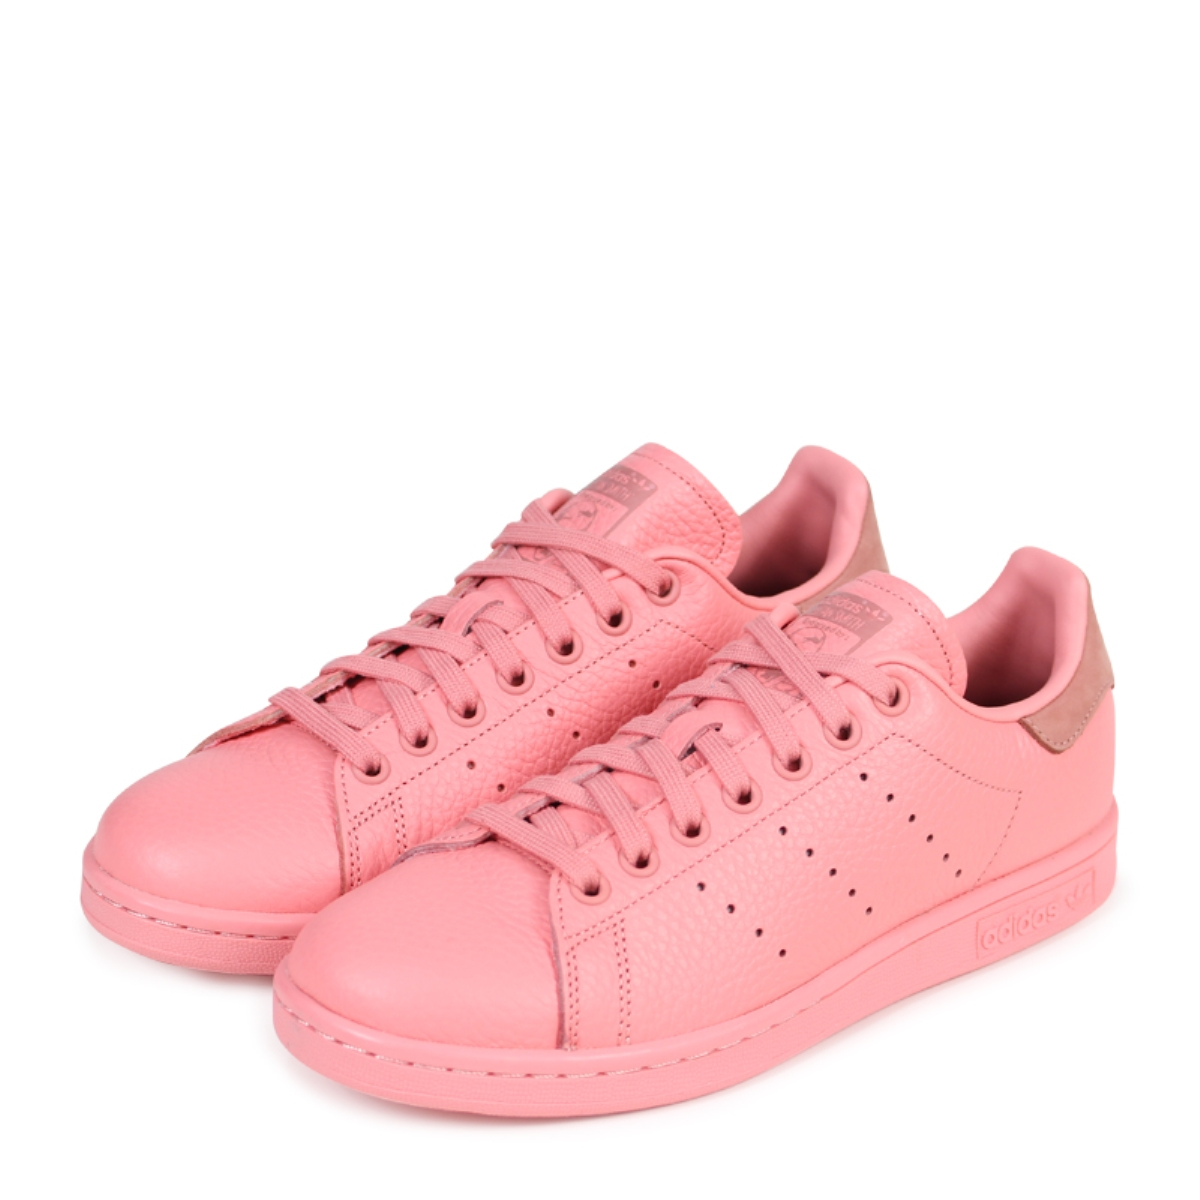 finest selection a39d2 f6947 adidas Originals STAN SMITH Adidas Stan Smith Lady's men sneakers BZ0469  pink originals [2/8 Shinnyu load] [182]